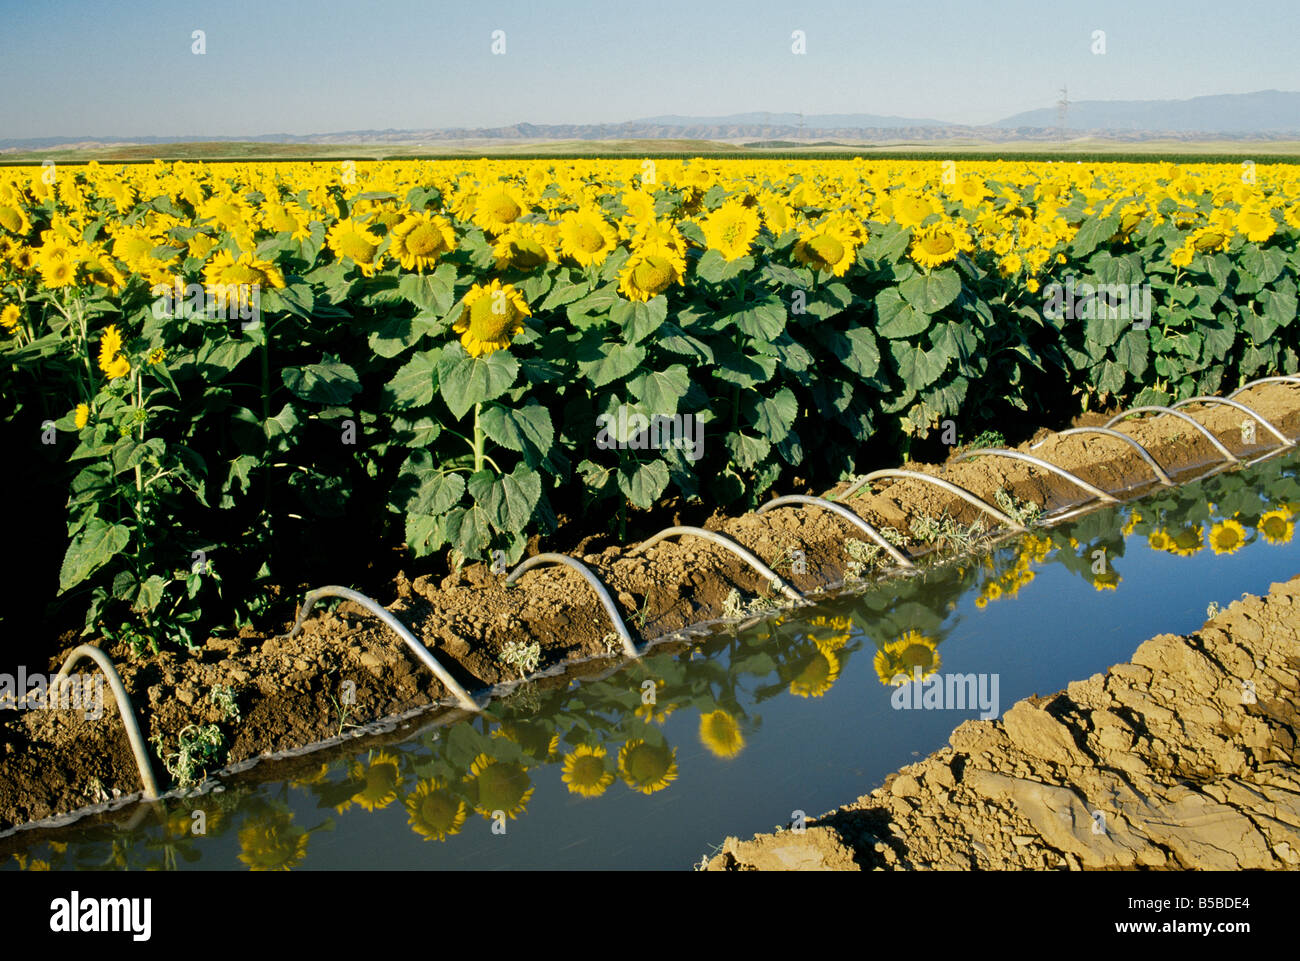 Sunflower field with siphon irrigation. - Stock Image